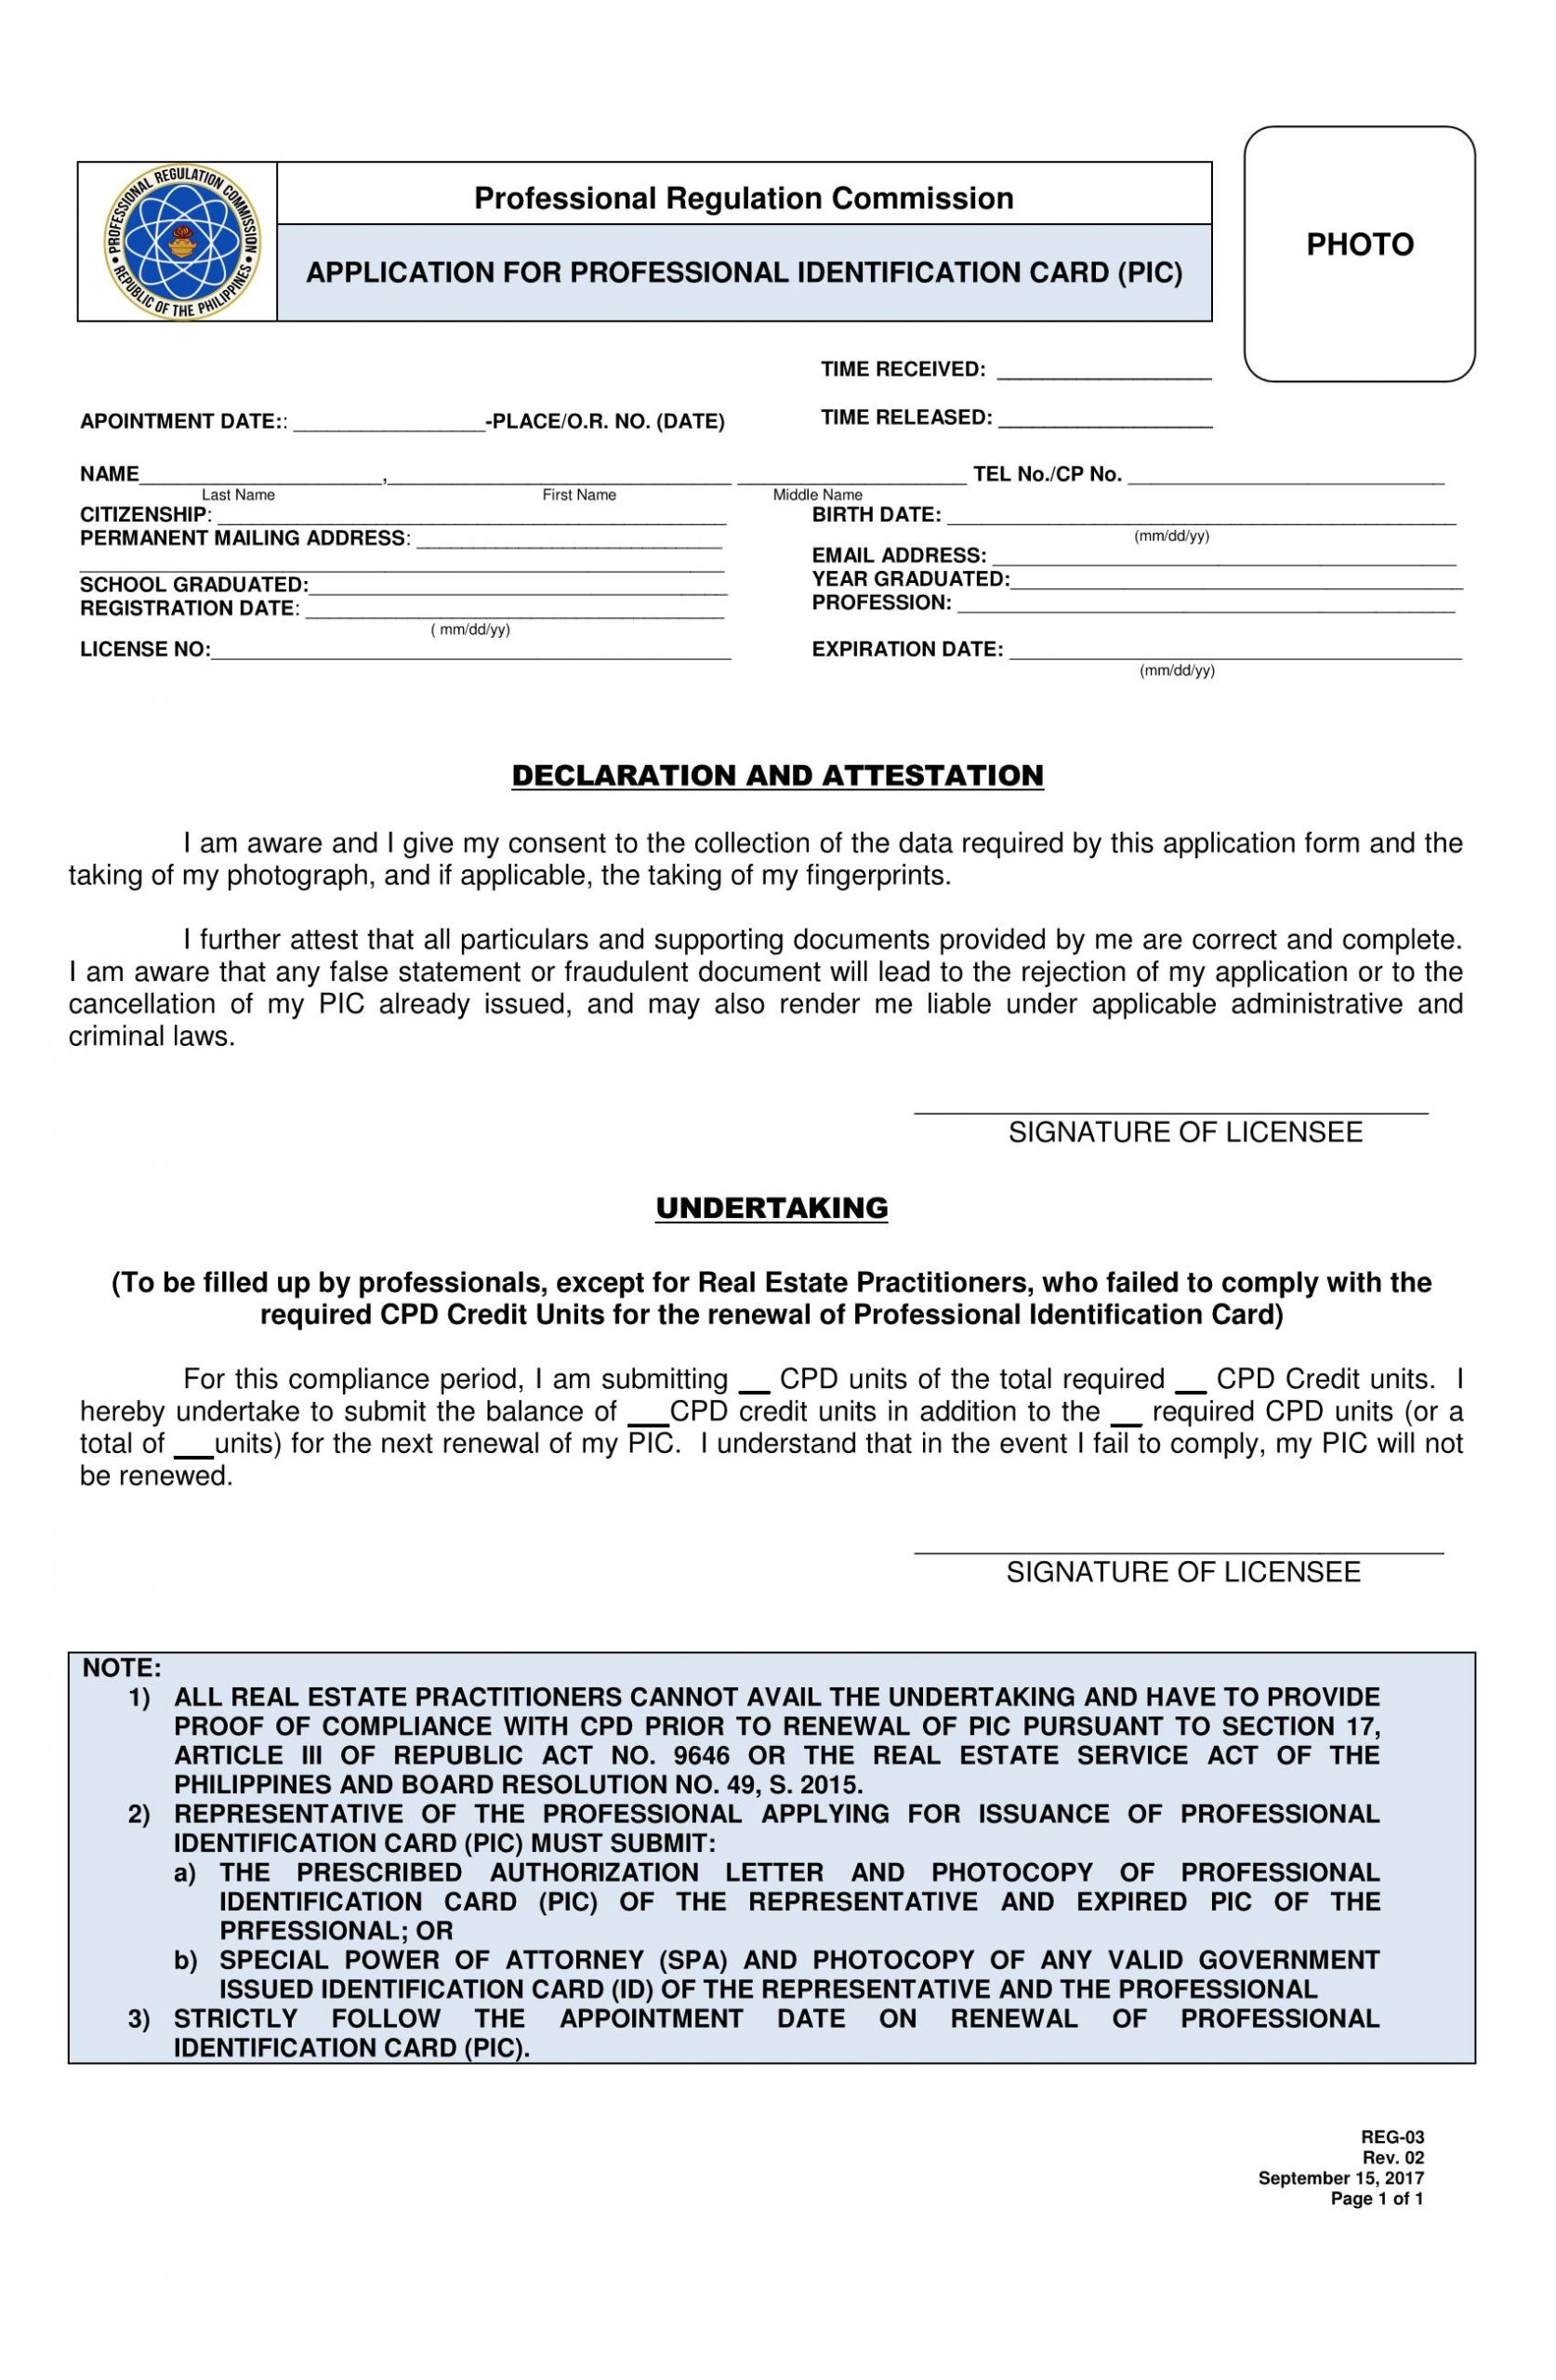 Application for Professional Identification Card form forms Professional Regulation Commission